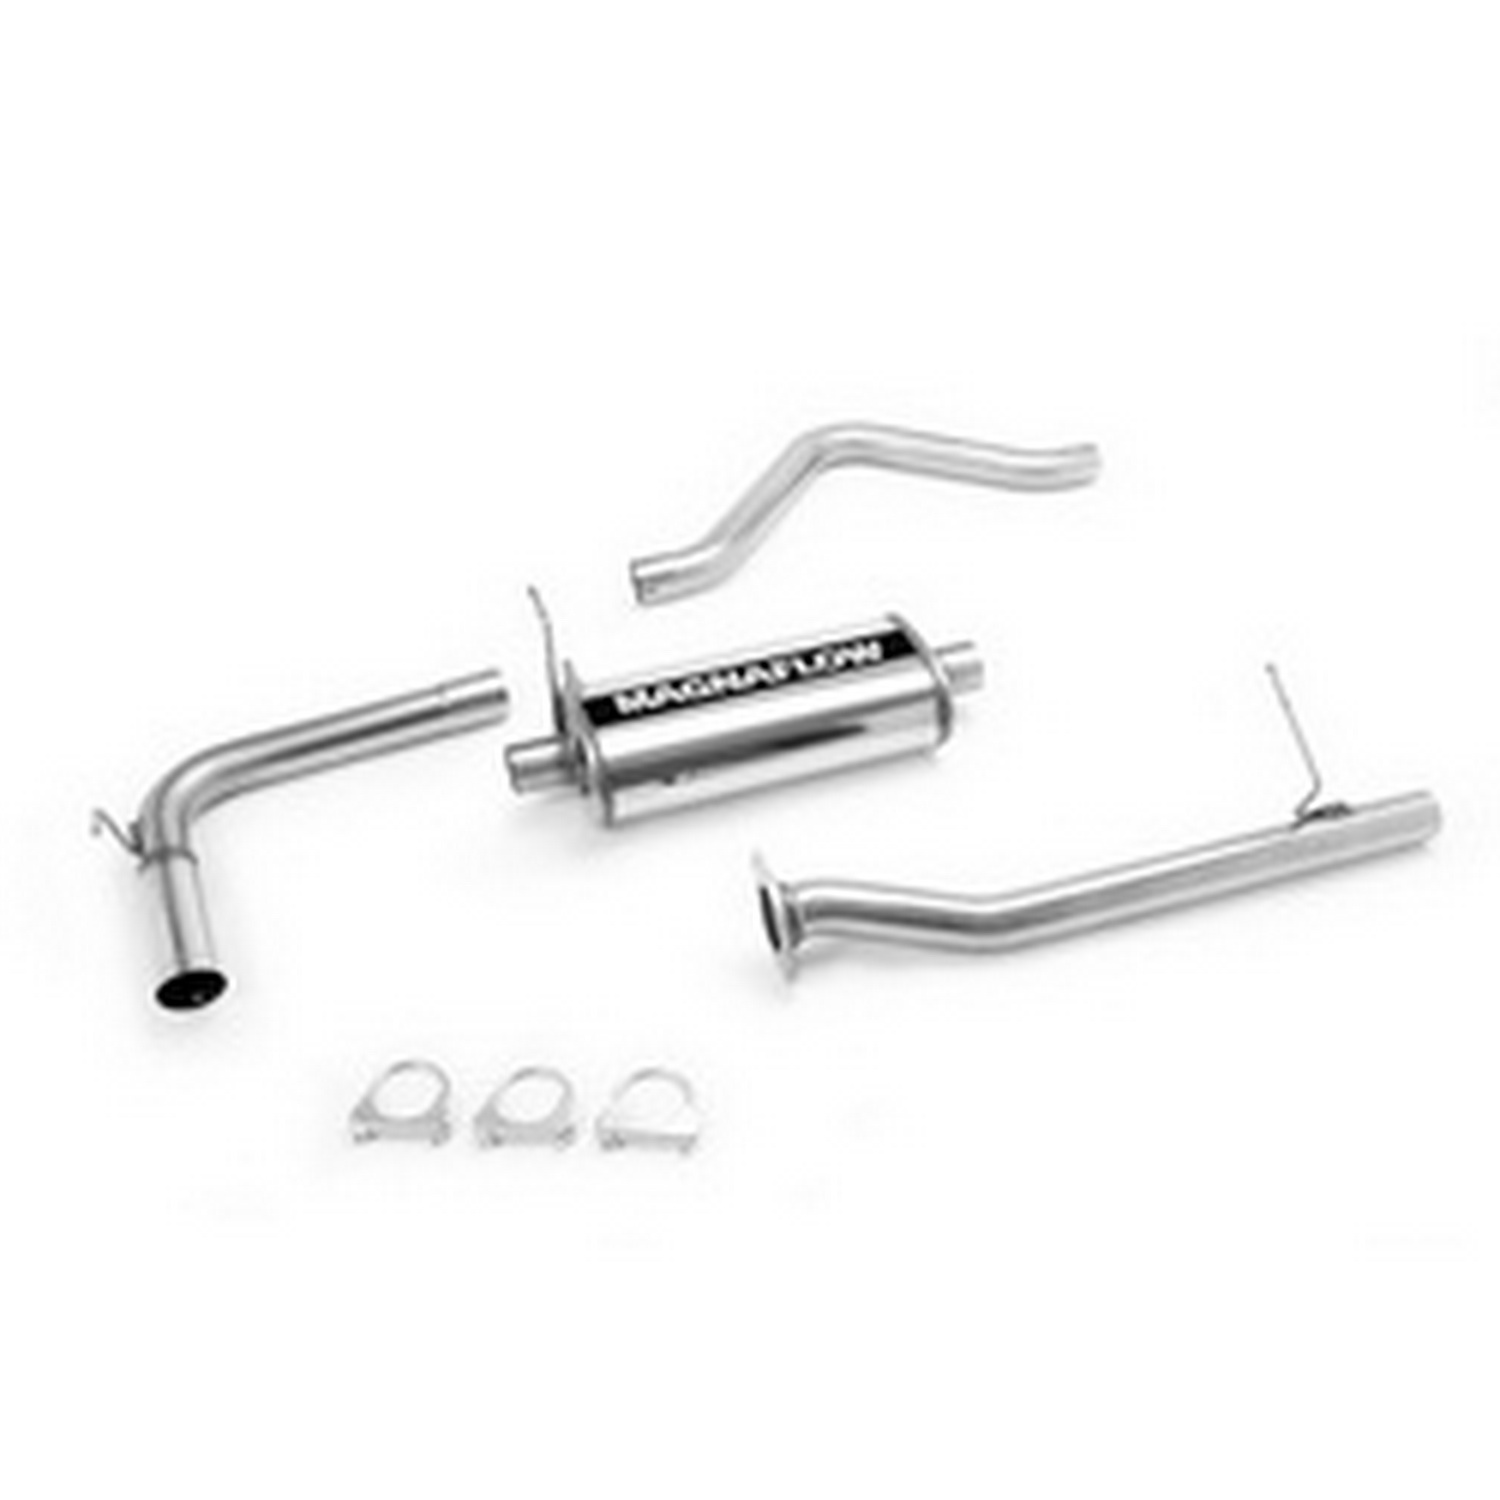 Autopartsway Canada Gmc Sonoma Exhaust System Kit